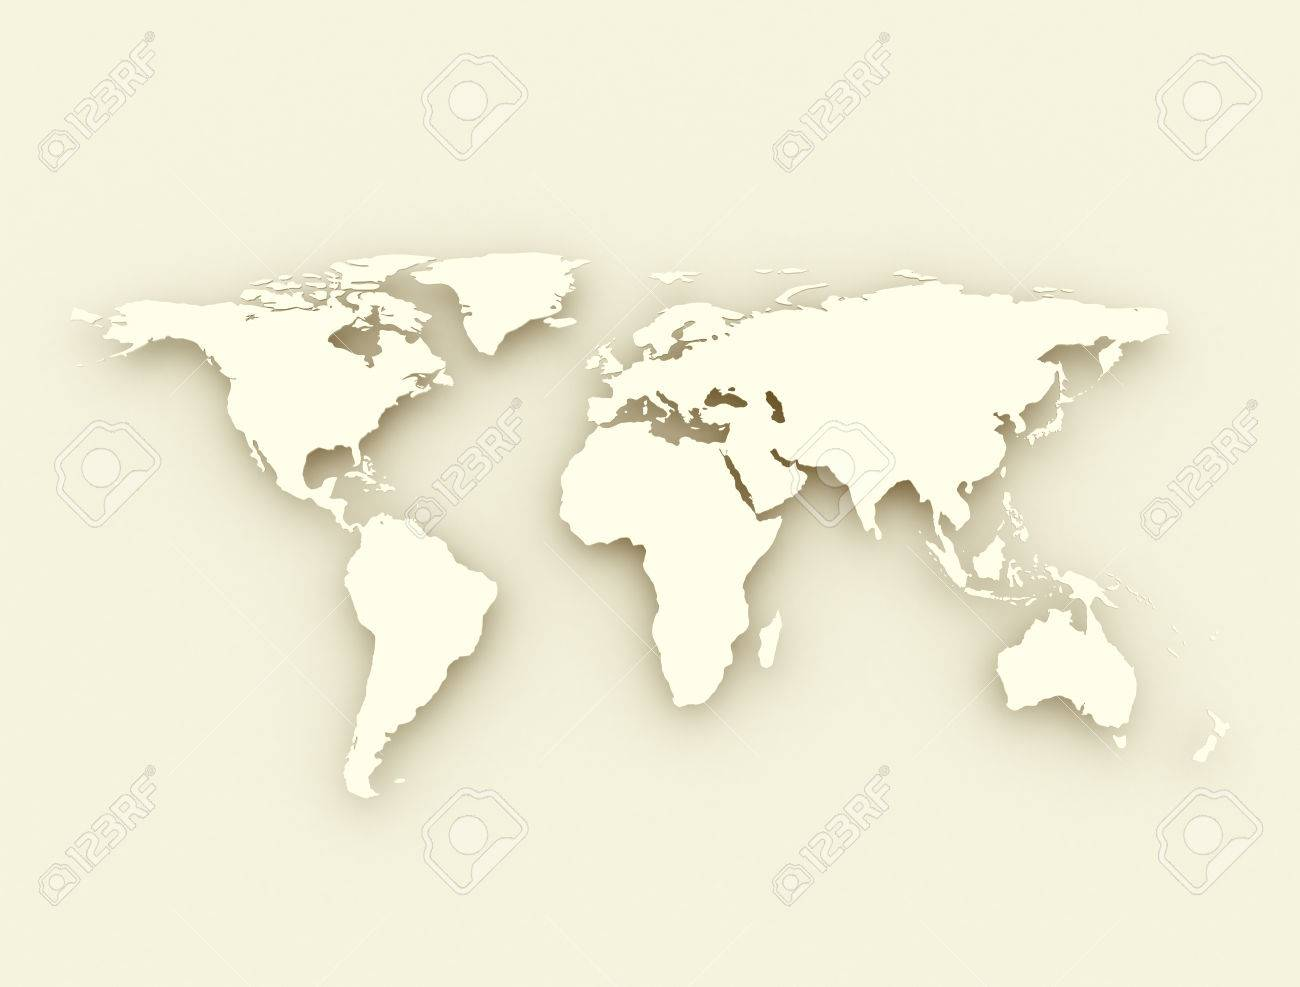 World Map Antique Style Illustration Stock Photo Picture And